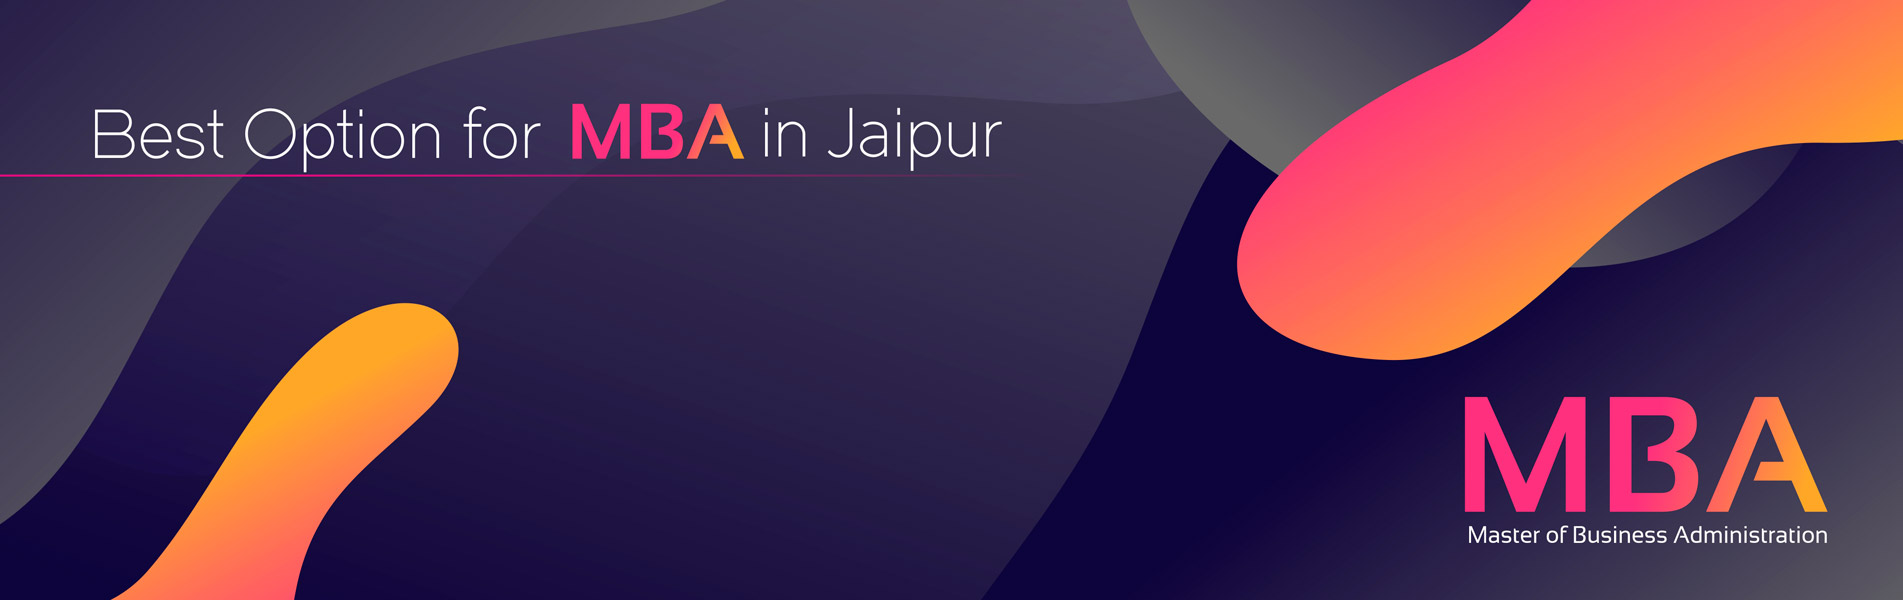 Best-Option-for-MBA-in-Jaipur